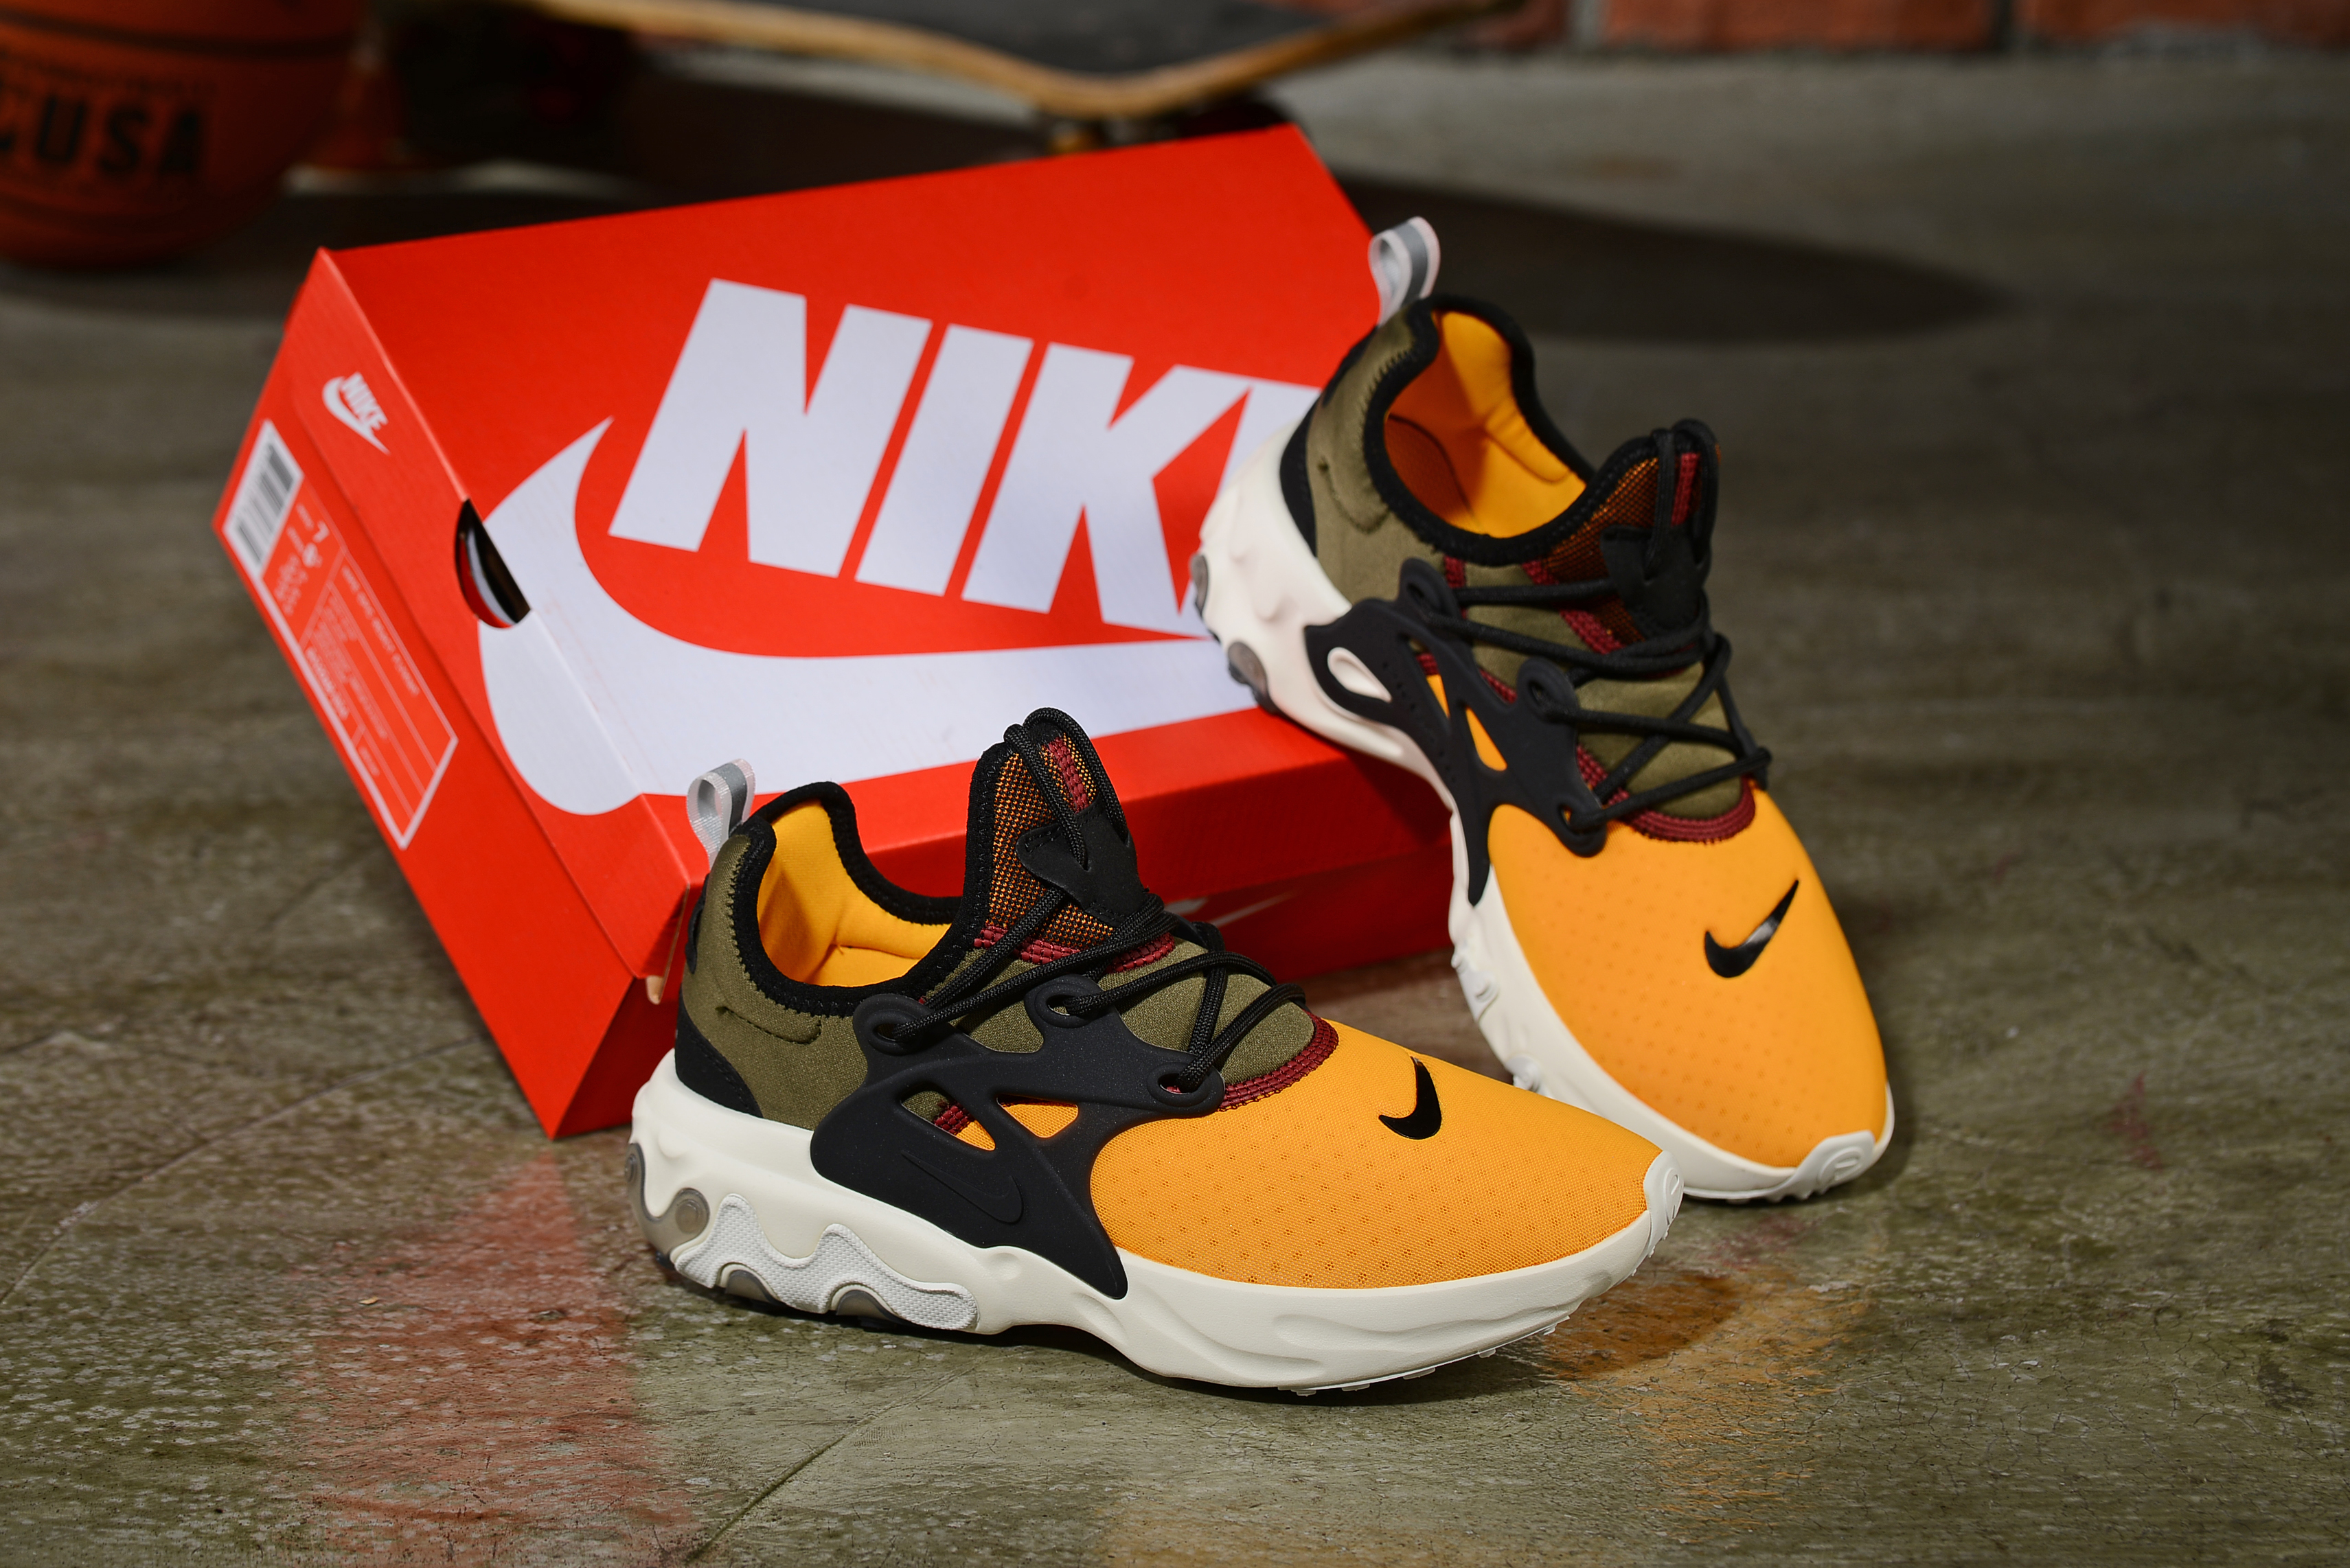 2019 Women Nike Epeic React Yellow Black White Shoes